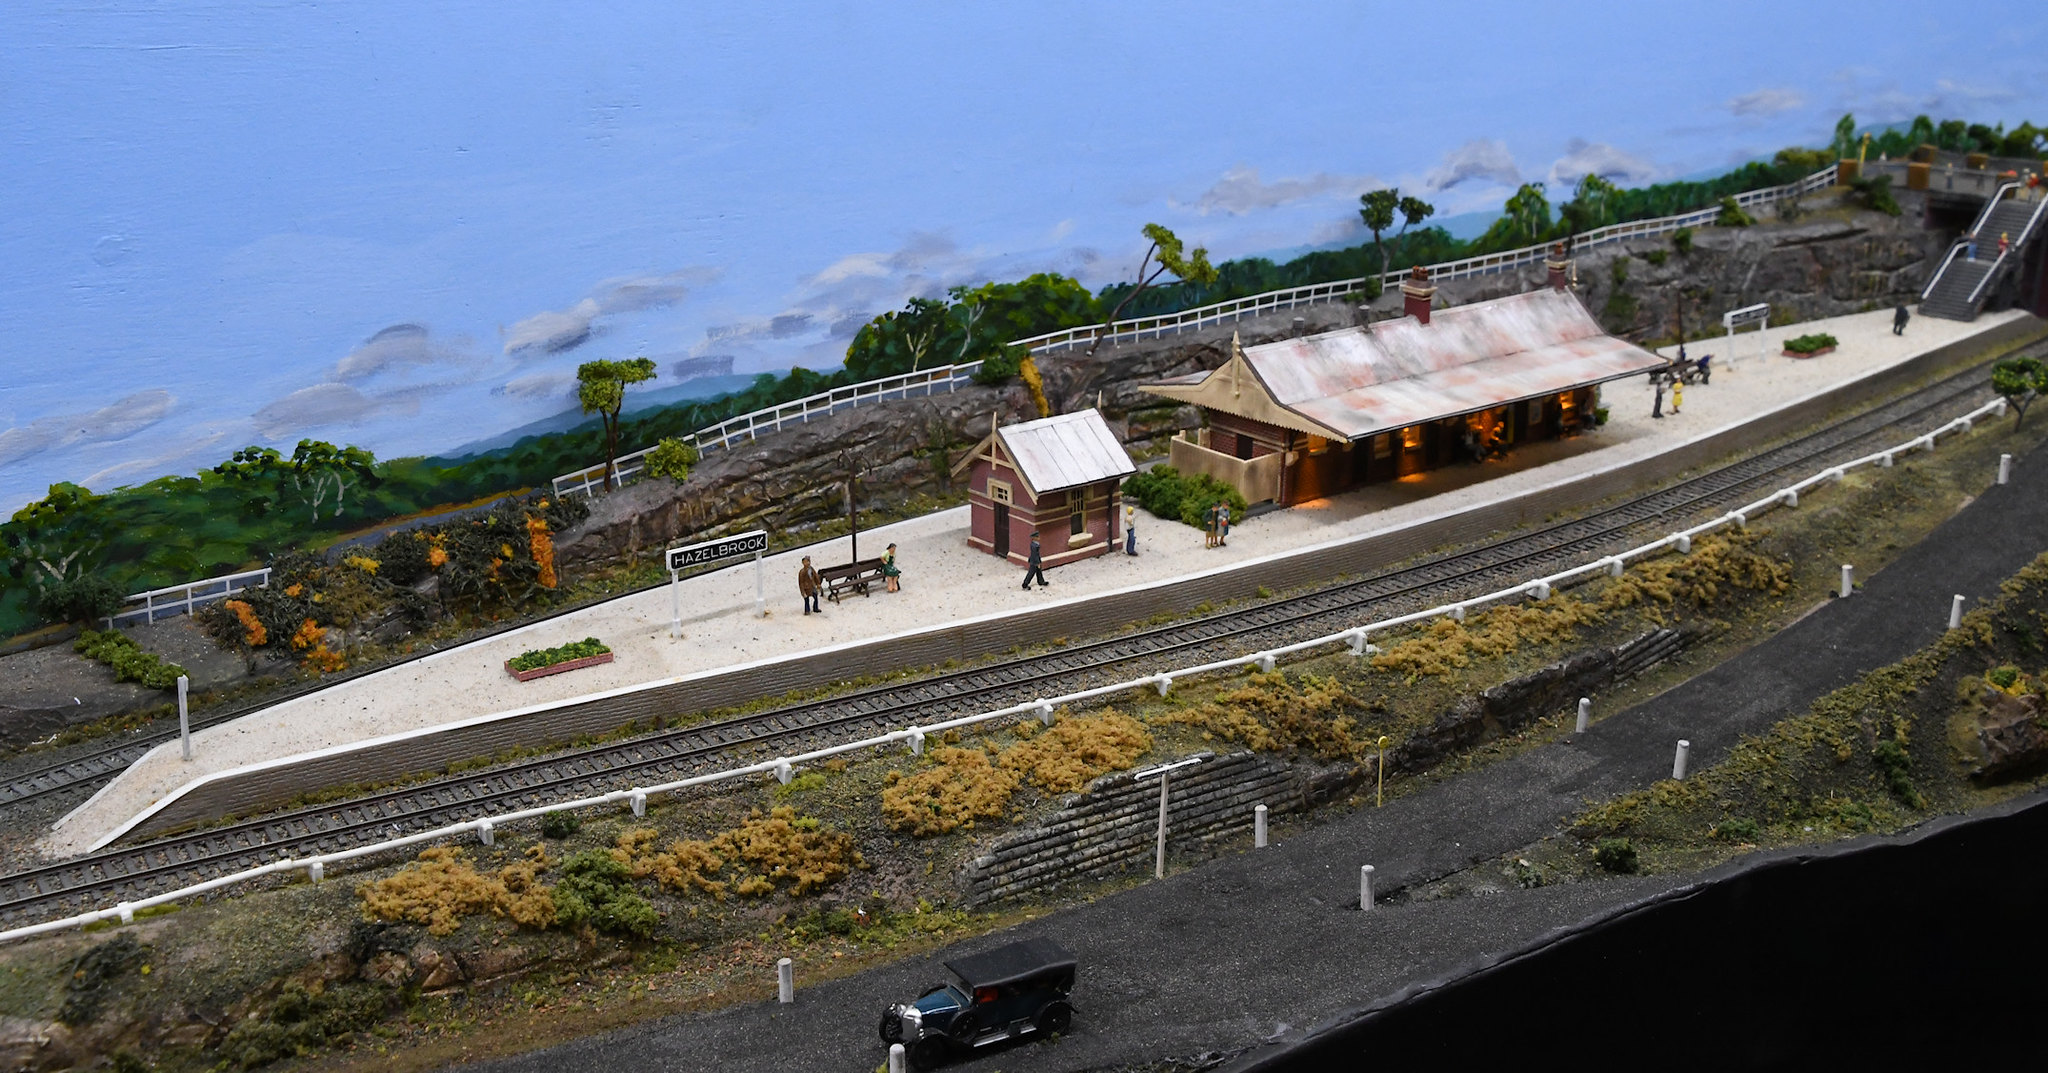 Hazelbrook Railway Station, Blue Mountains Layout, Epping Model Railway Exhibition, Rosehill, Sydney, NSW.